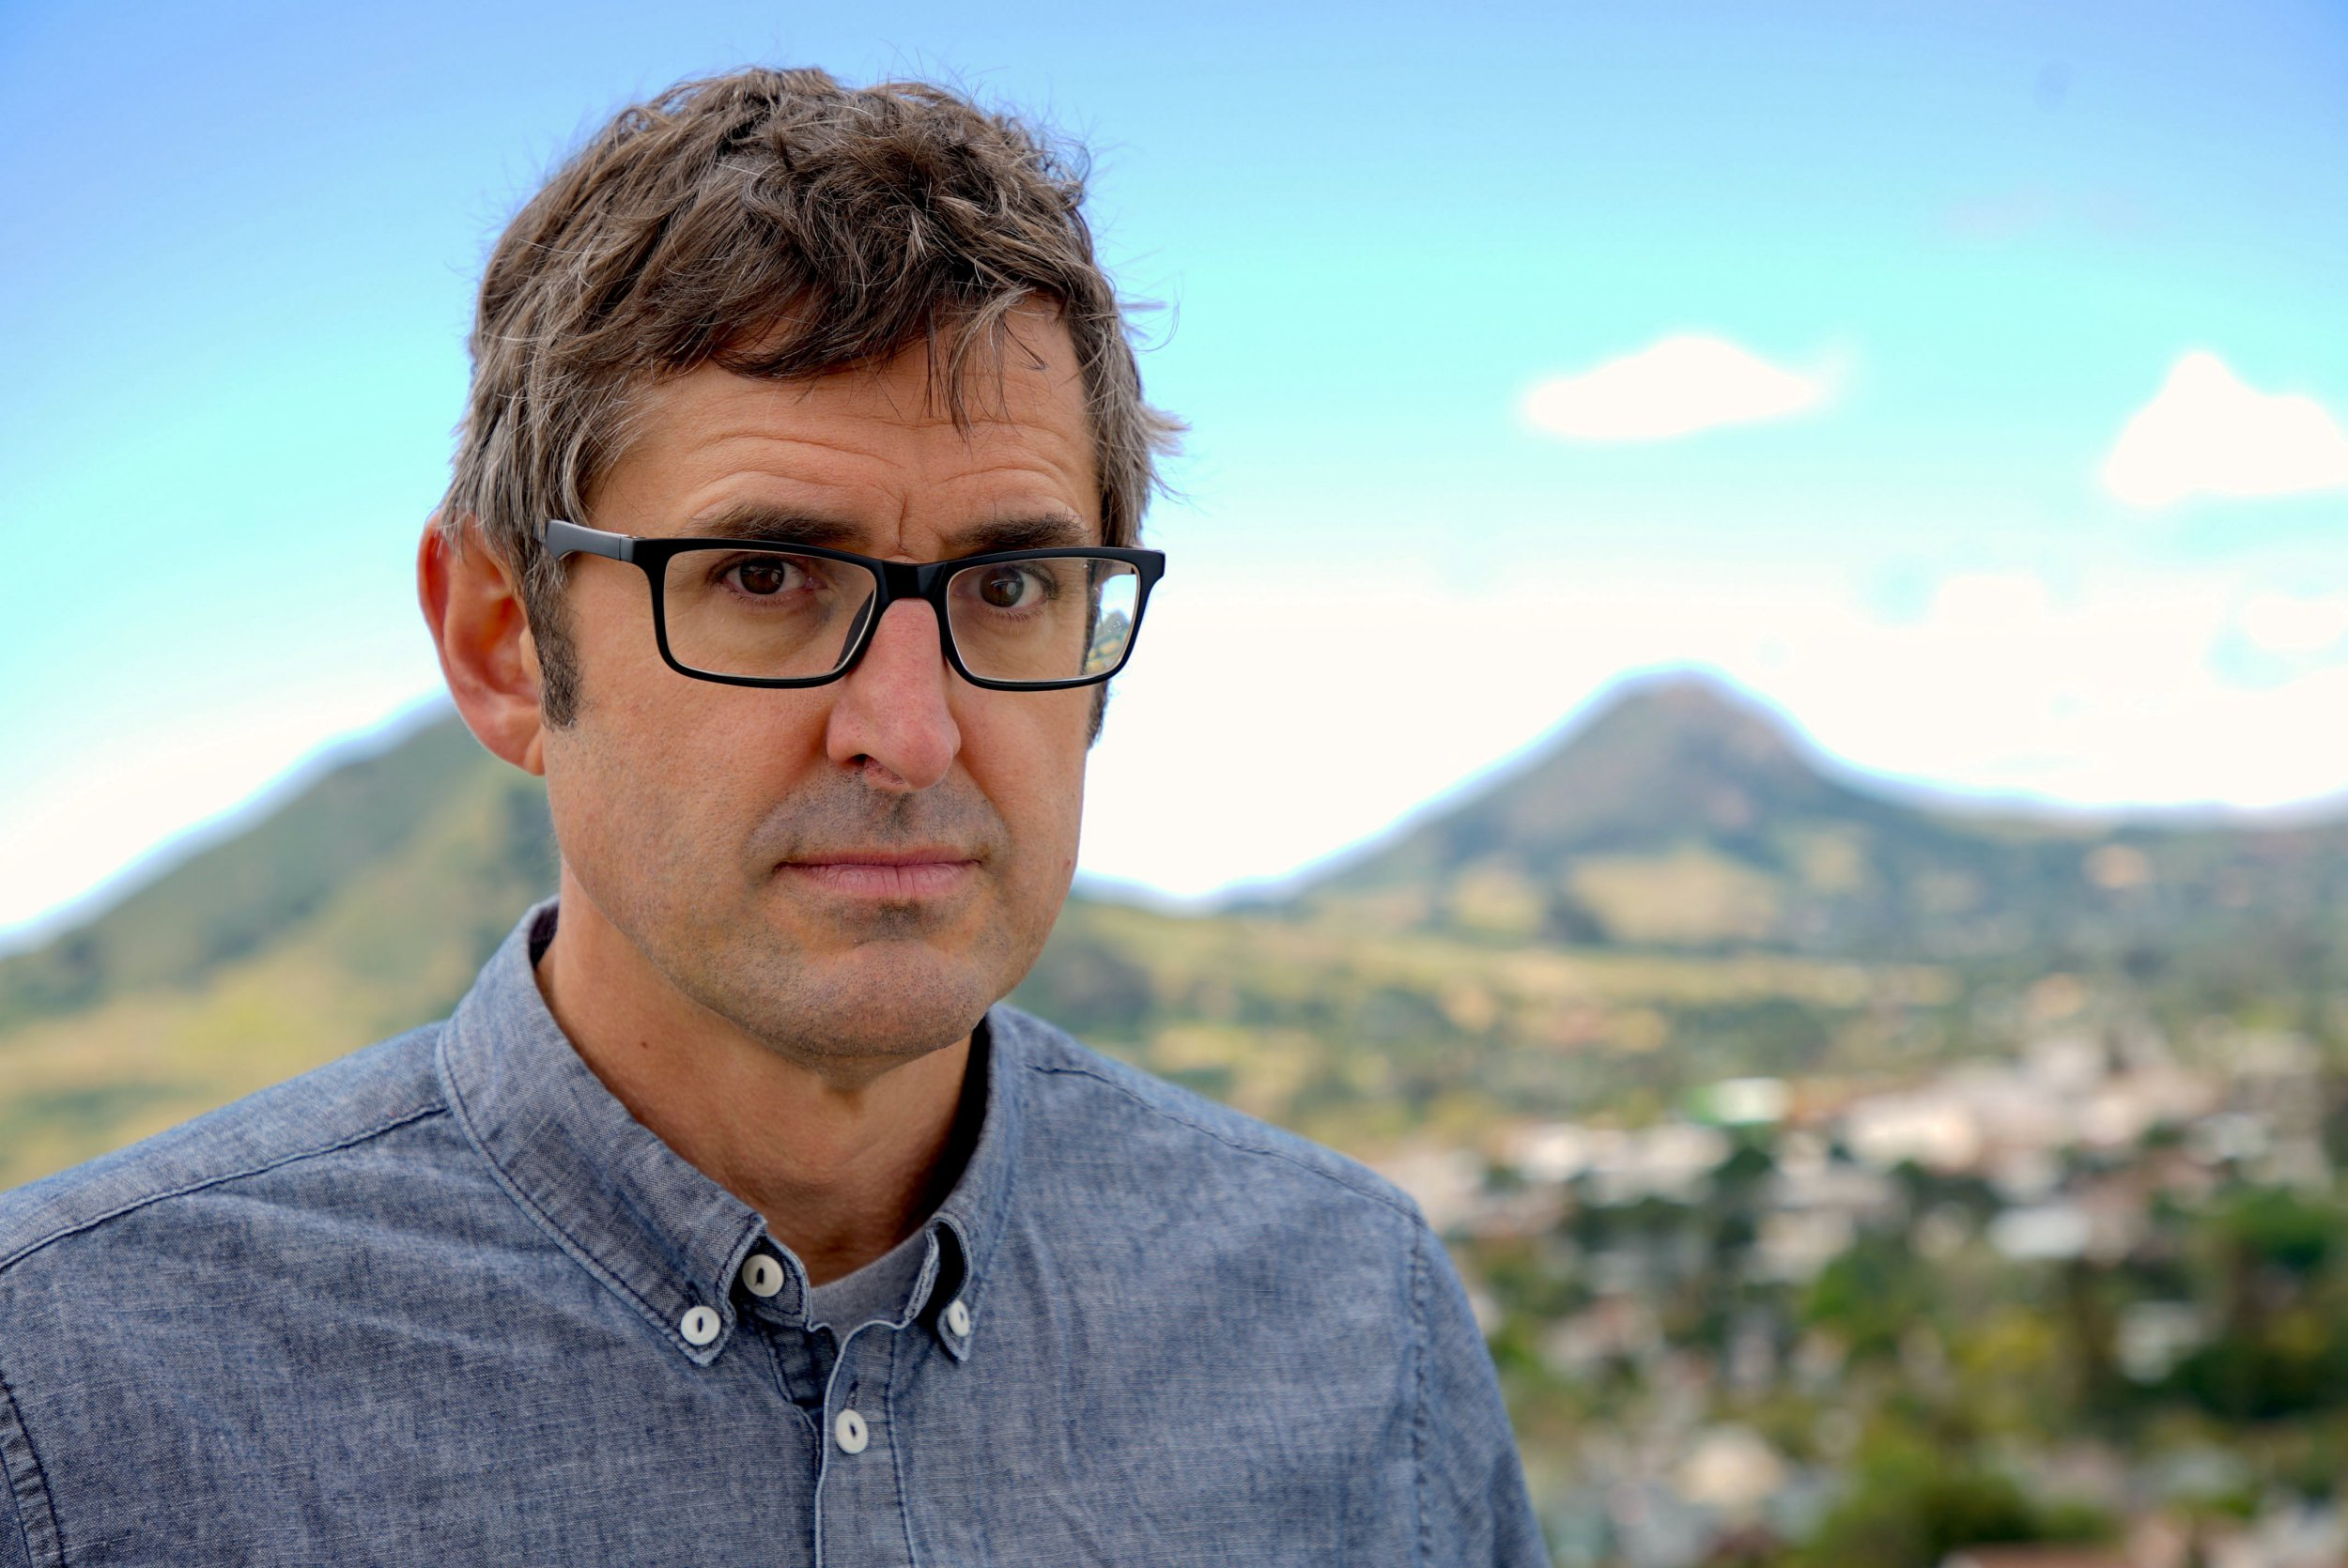 Louis Theroux's Twitter is hacked by cyber sleuths to show ease of accessing information